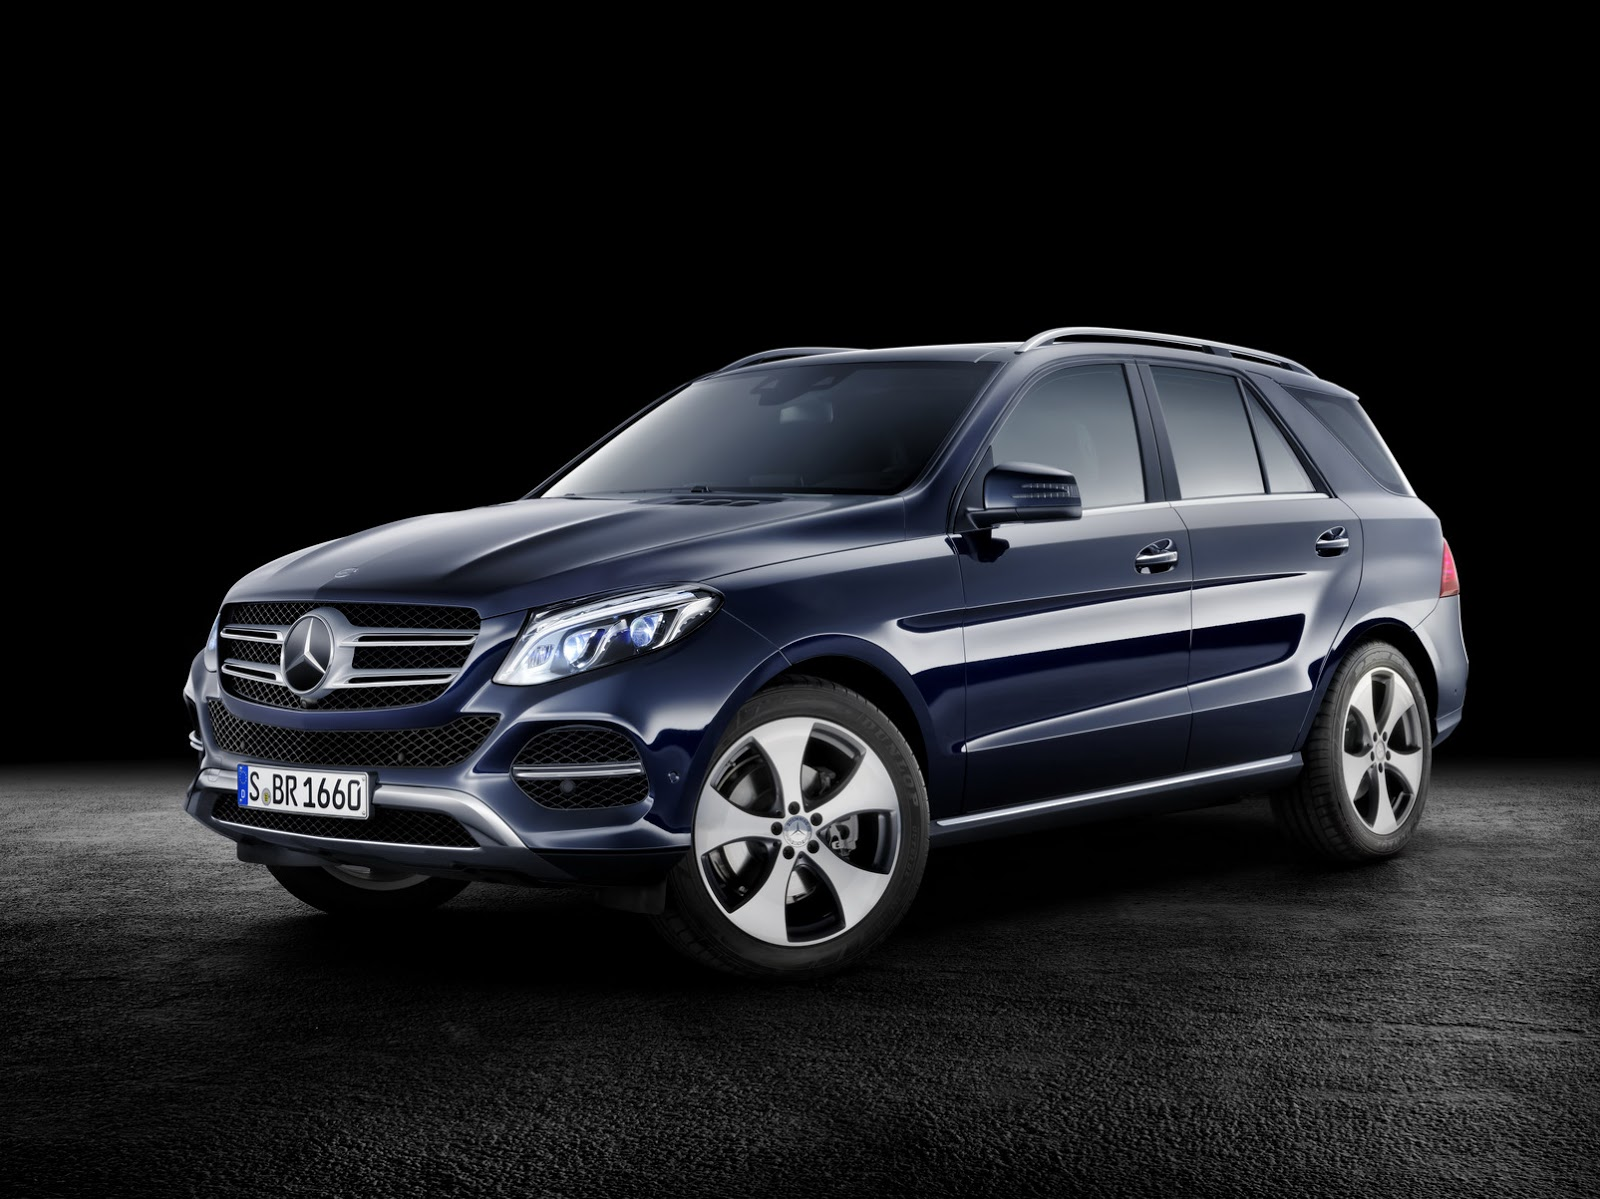 2016 mercedes benz gle officially breaks cover 66 hd photos carscoops